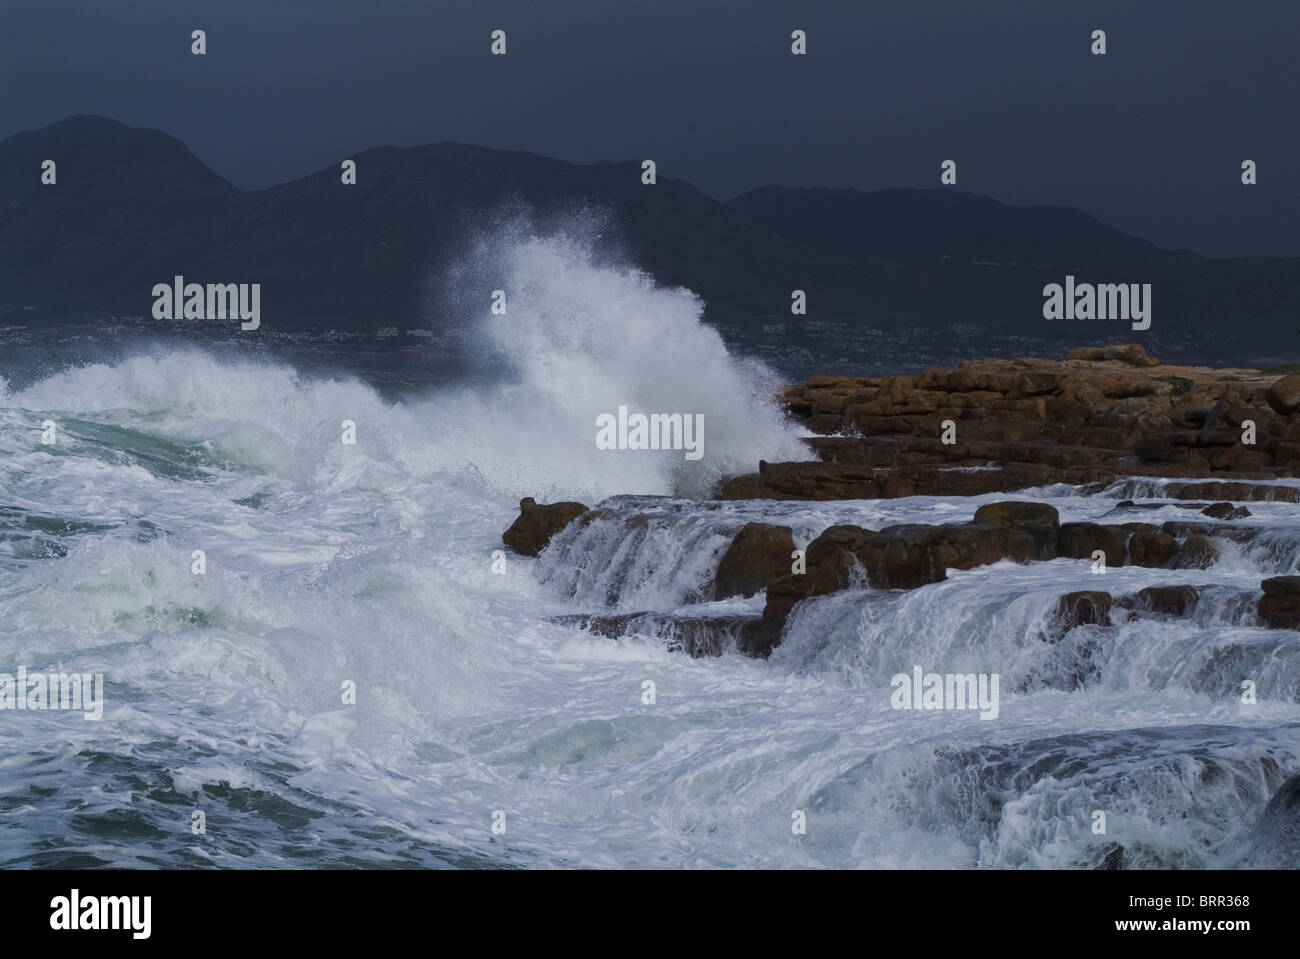 A storm at sea with waves crashing on the shore - Stock Image